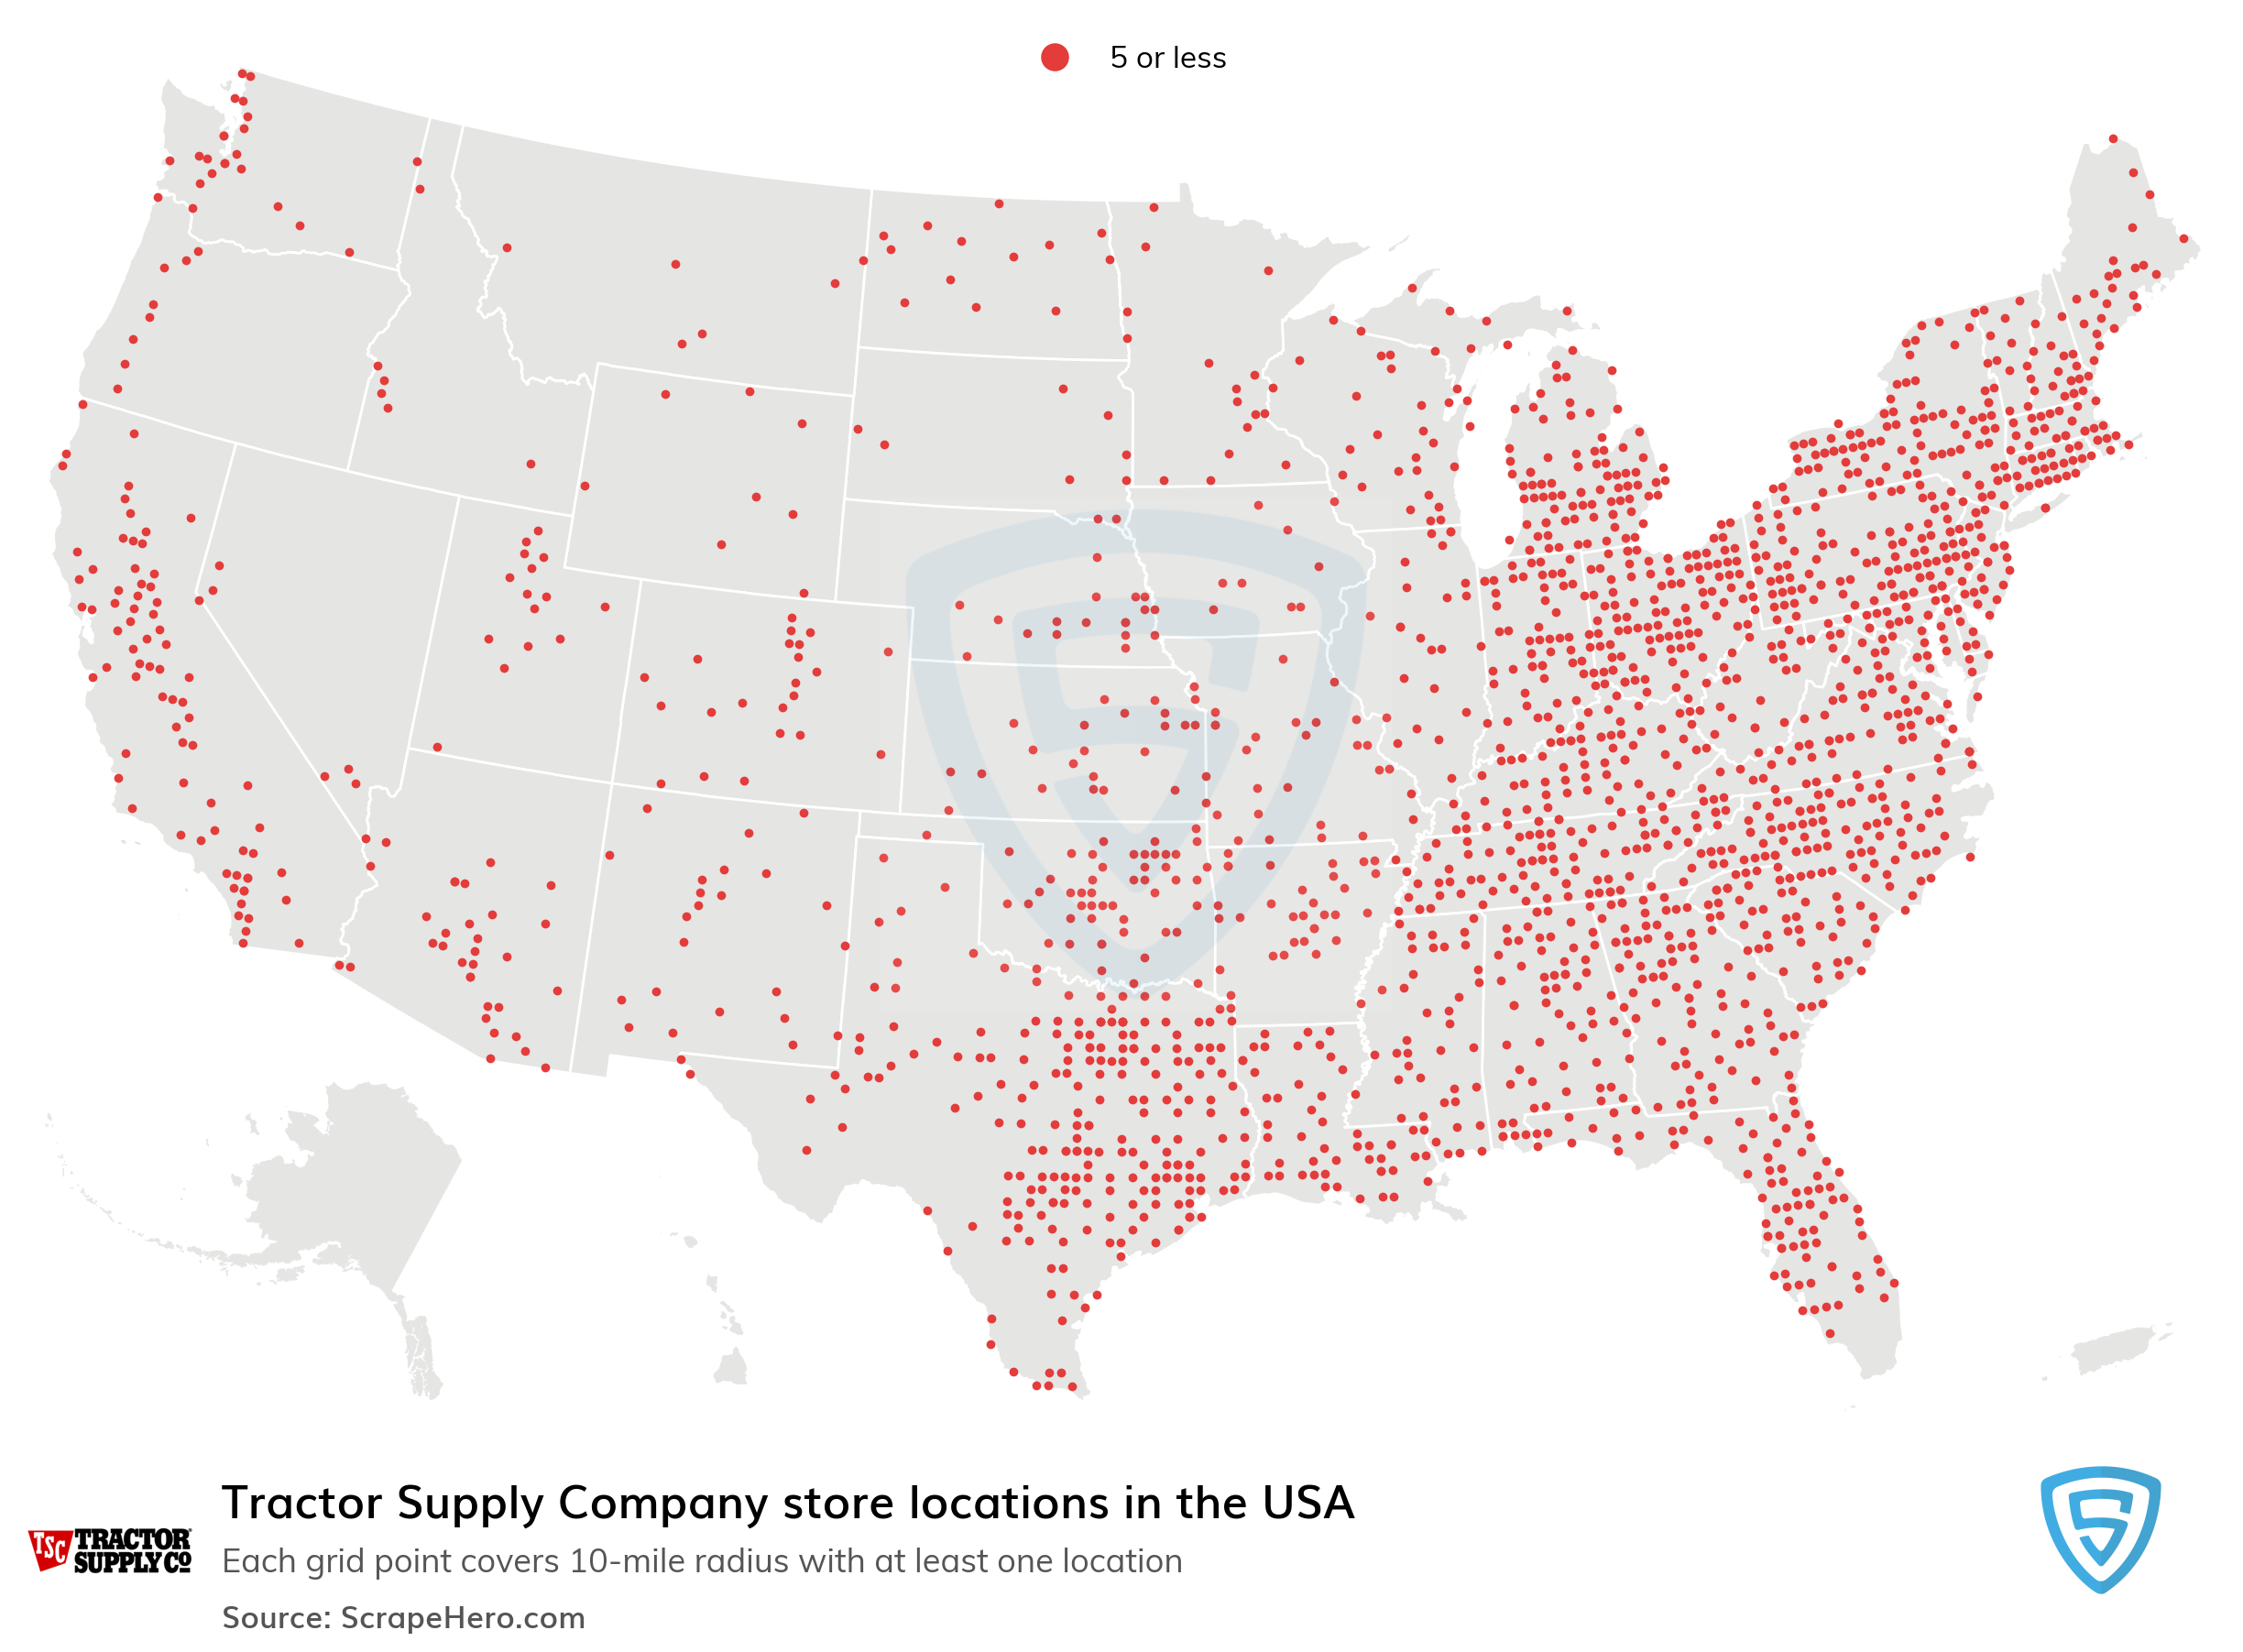 Tractor Supply Company Store locations